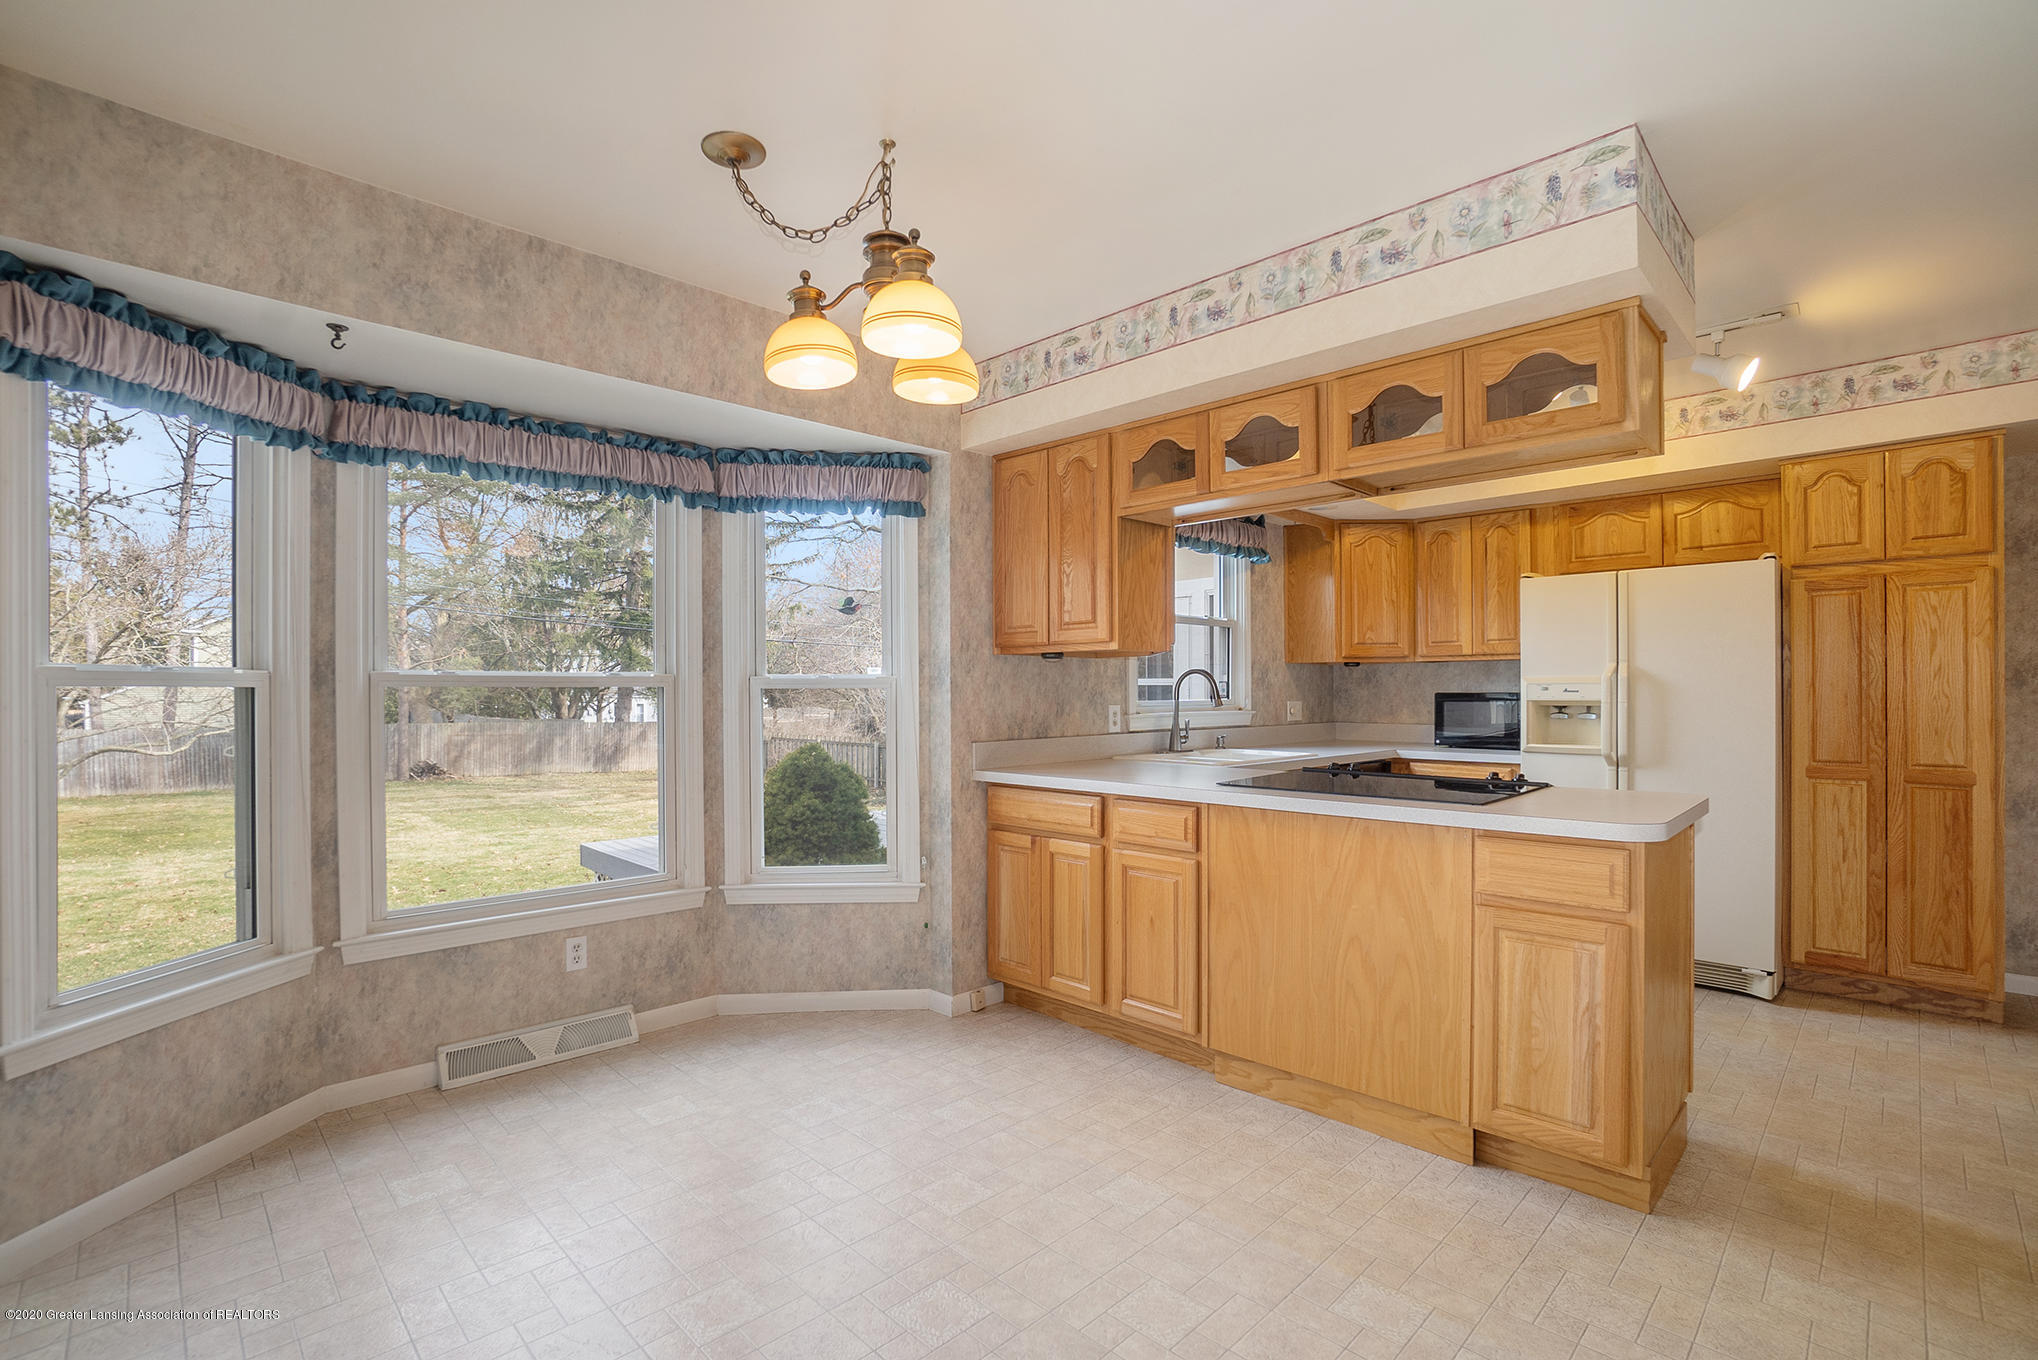 1266 Woodingham Dr - Dining Area - 18